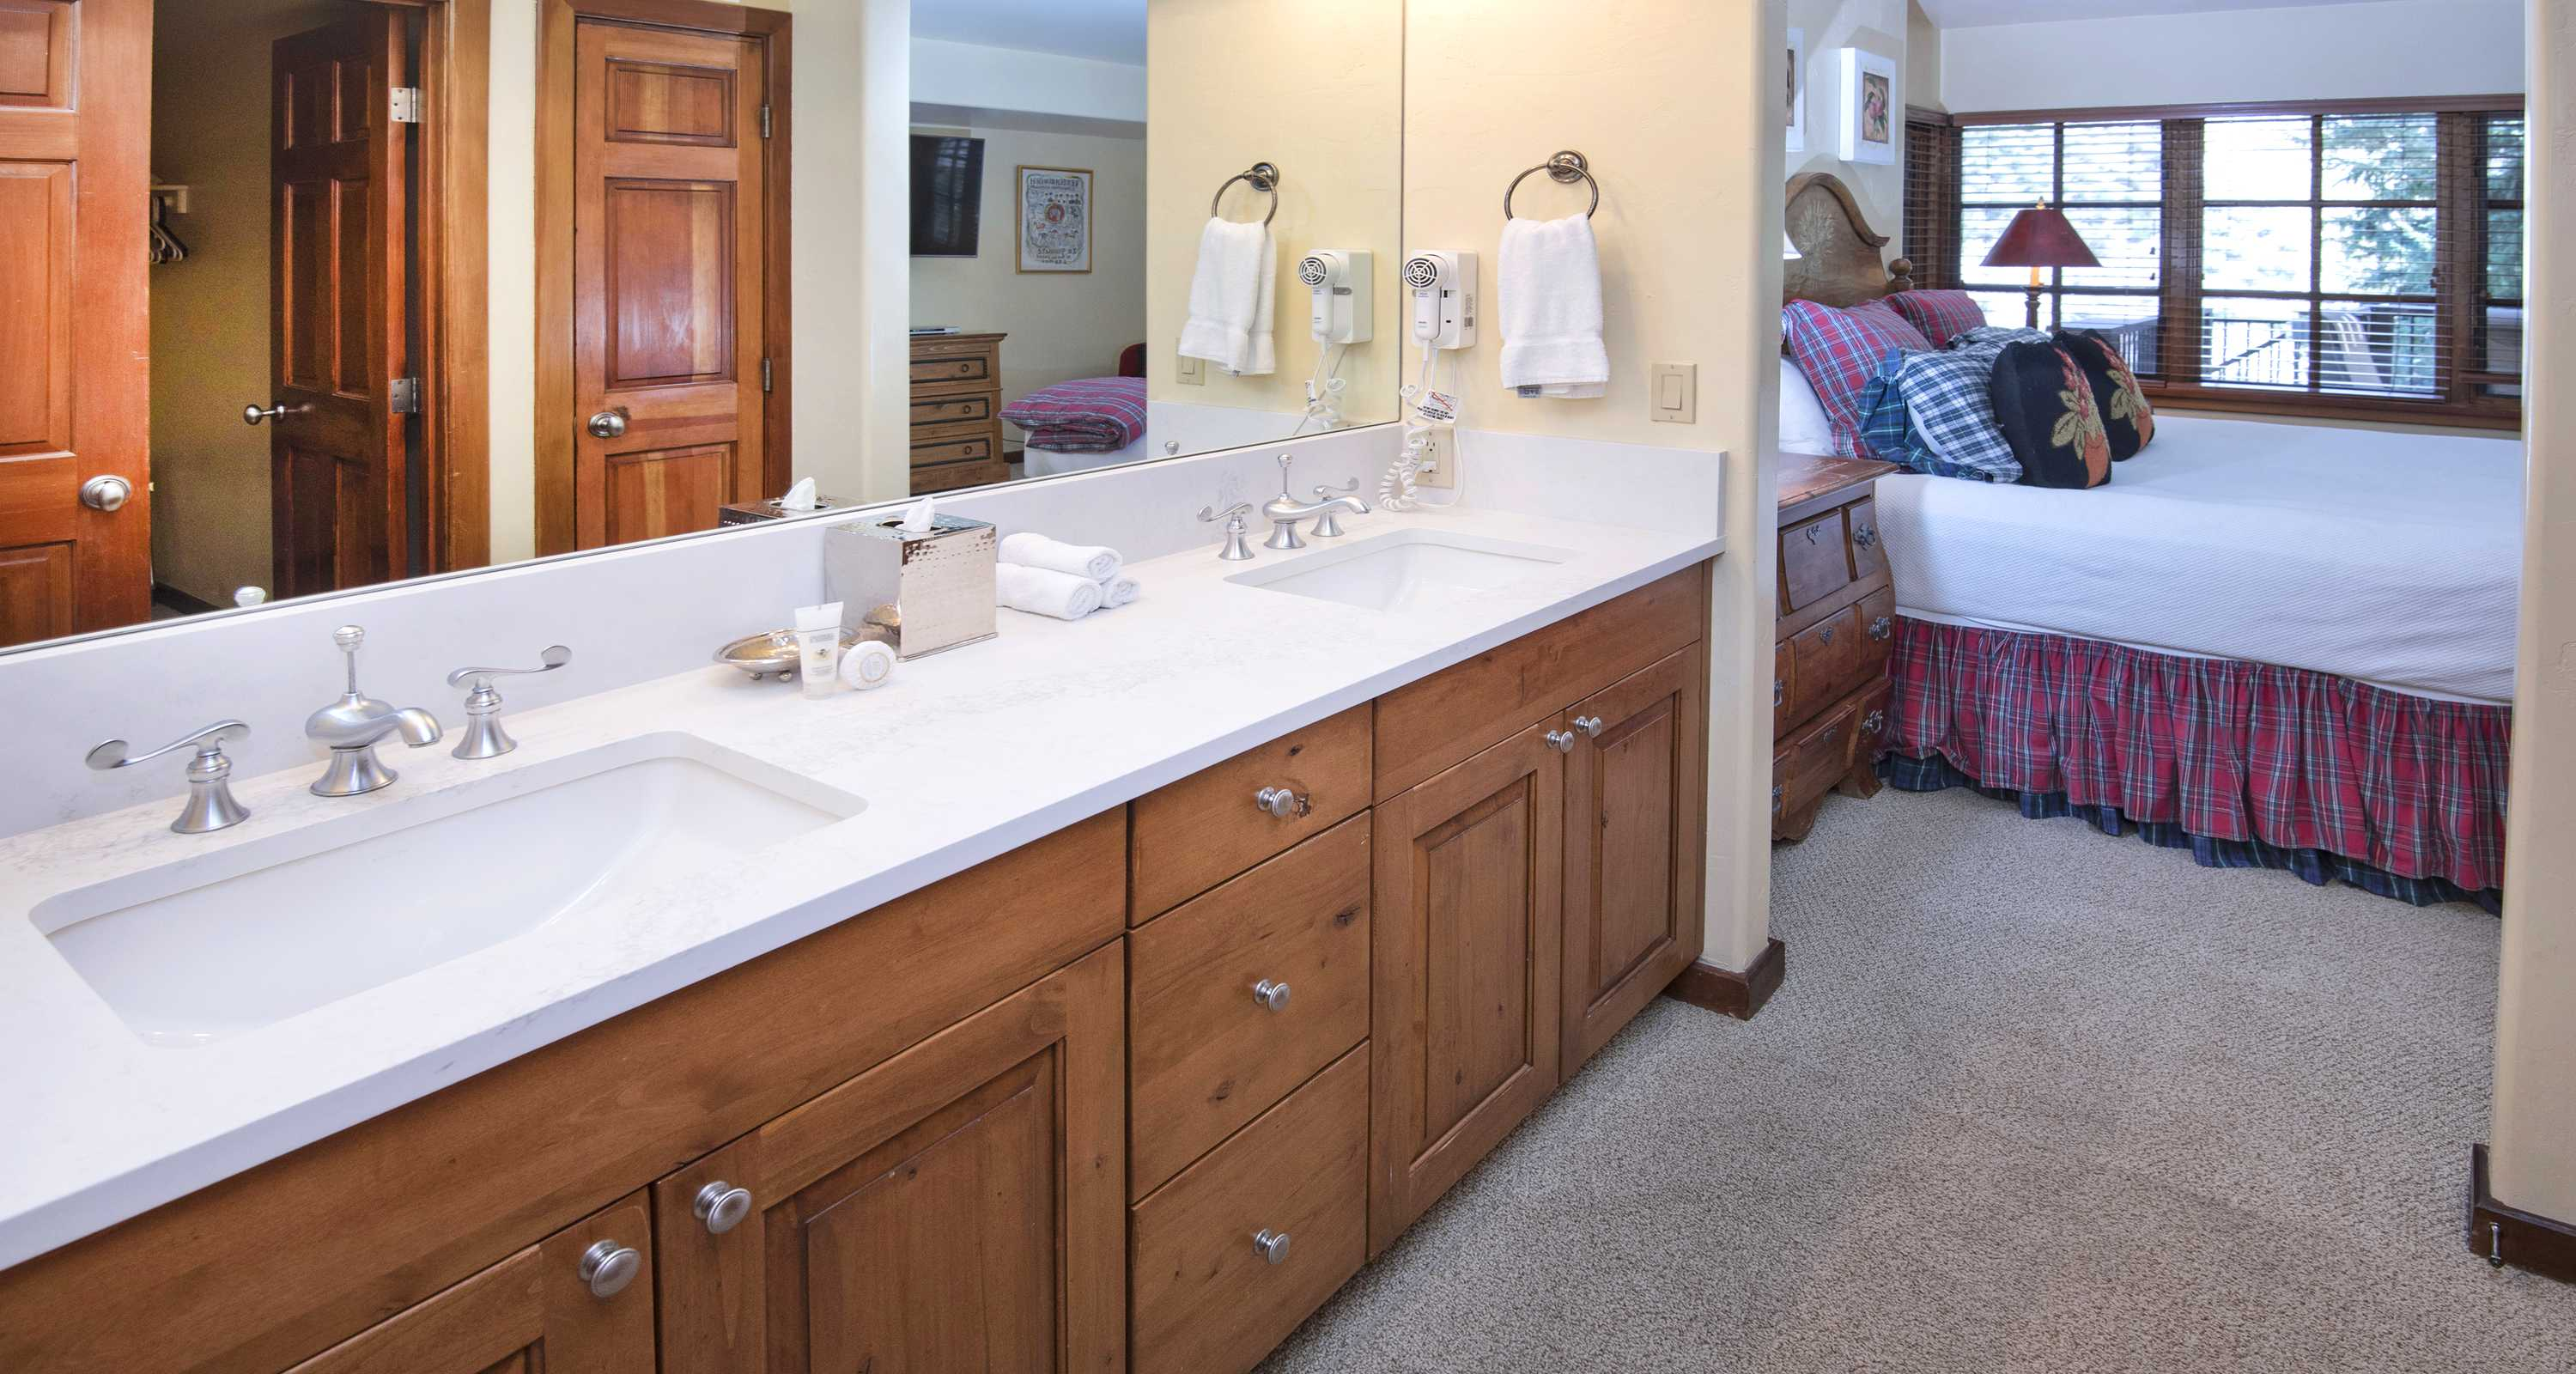 Double sinks are at it again!